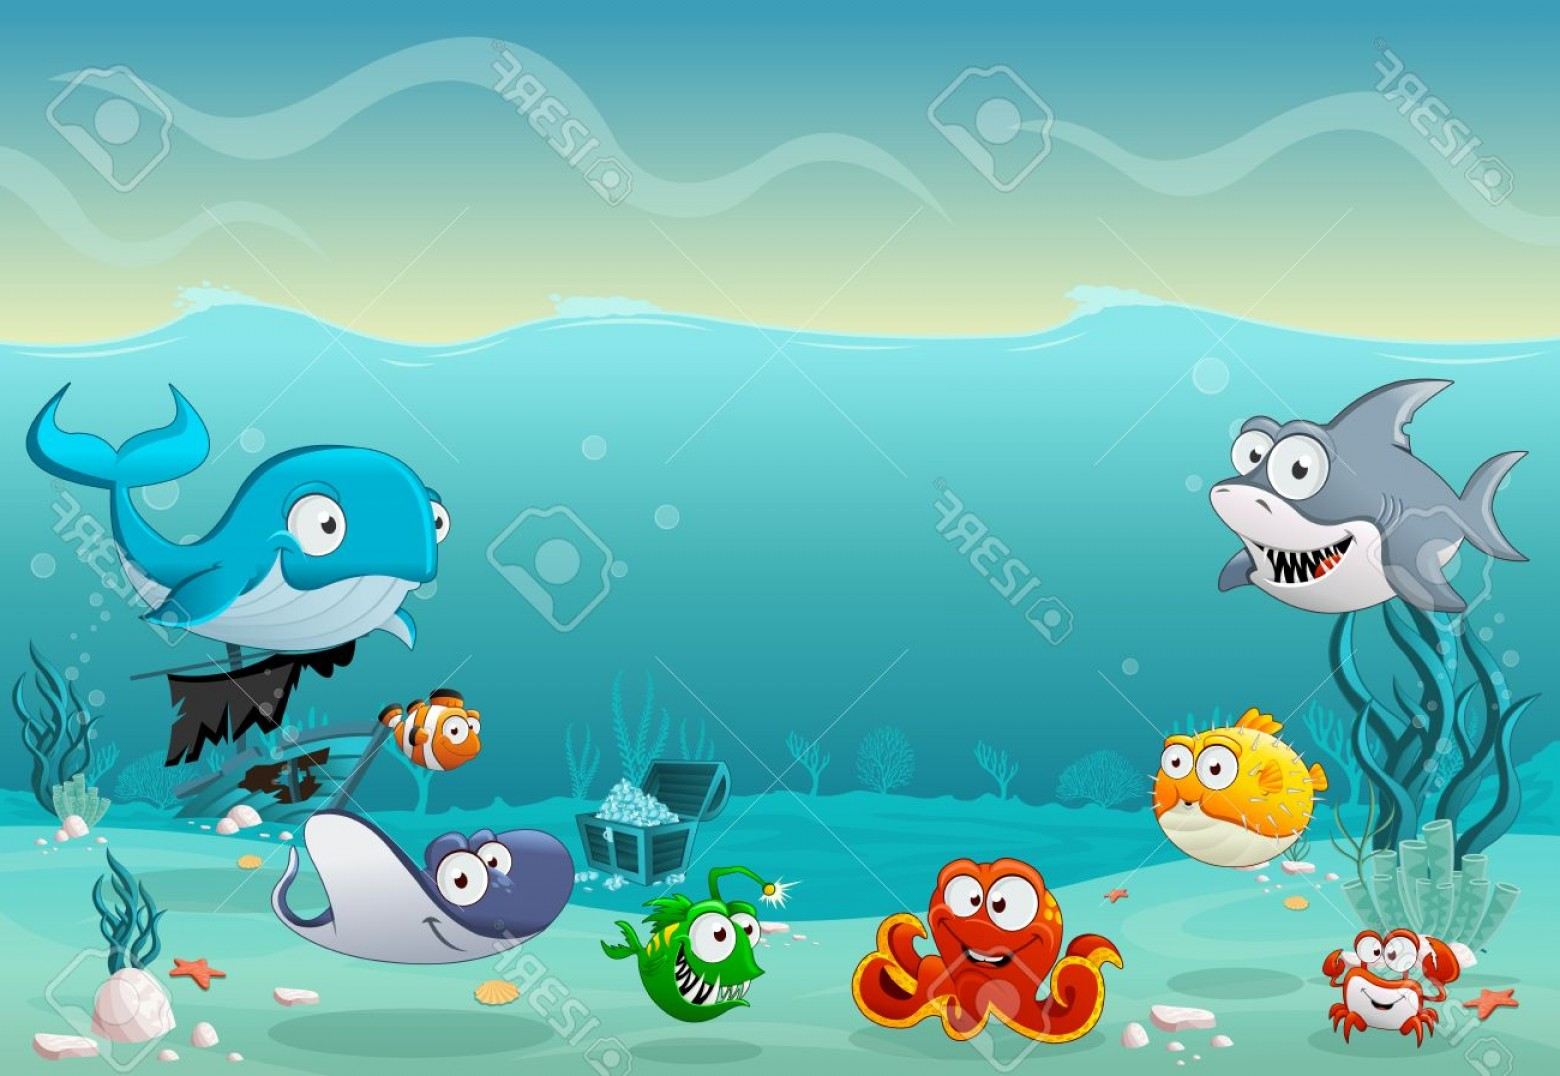 Underwater Sea Vector Art: Photostock Vector Cartoon Fish Under The Sea Underwater World With Corals